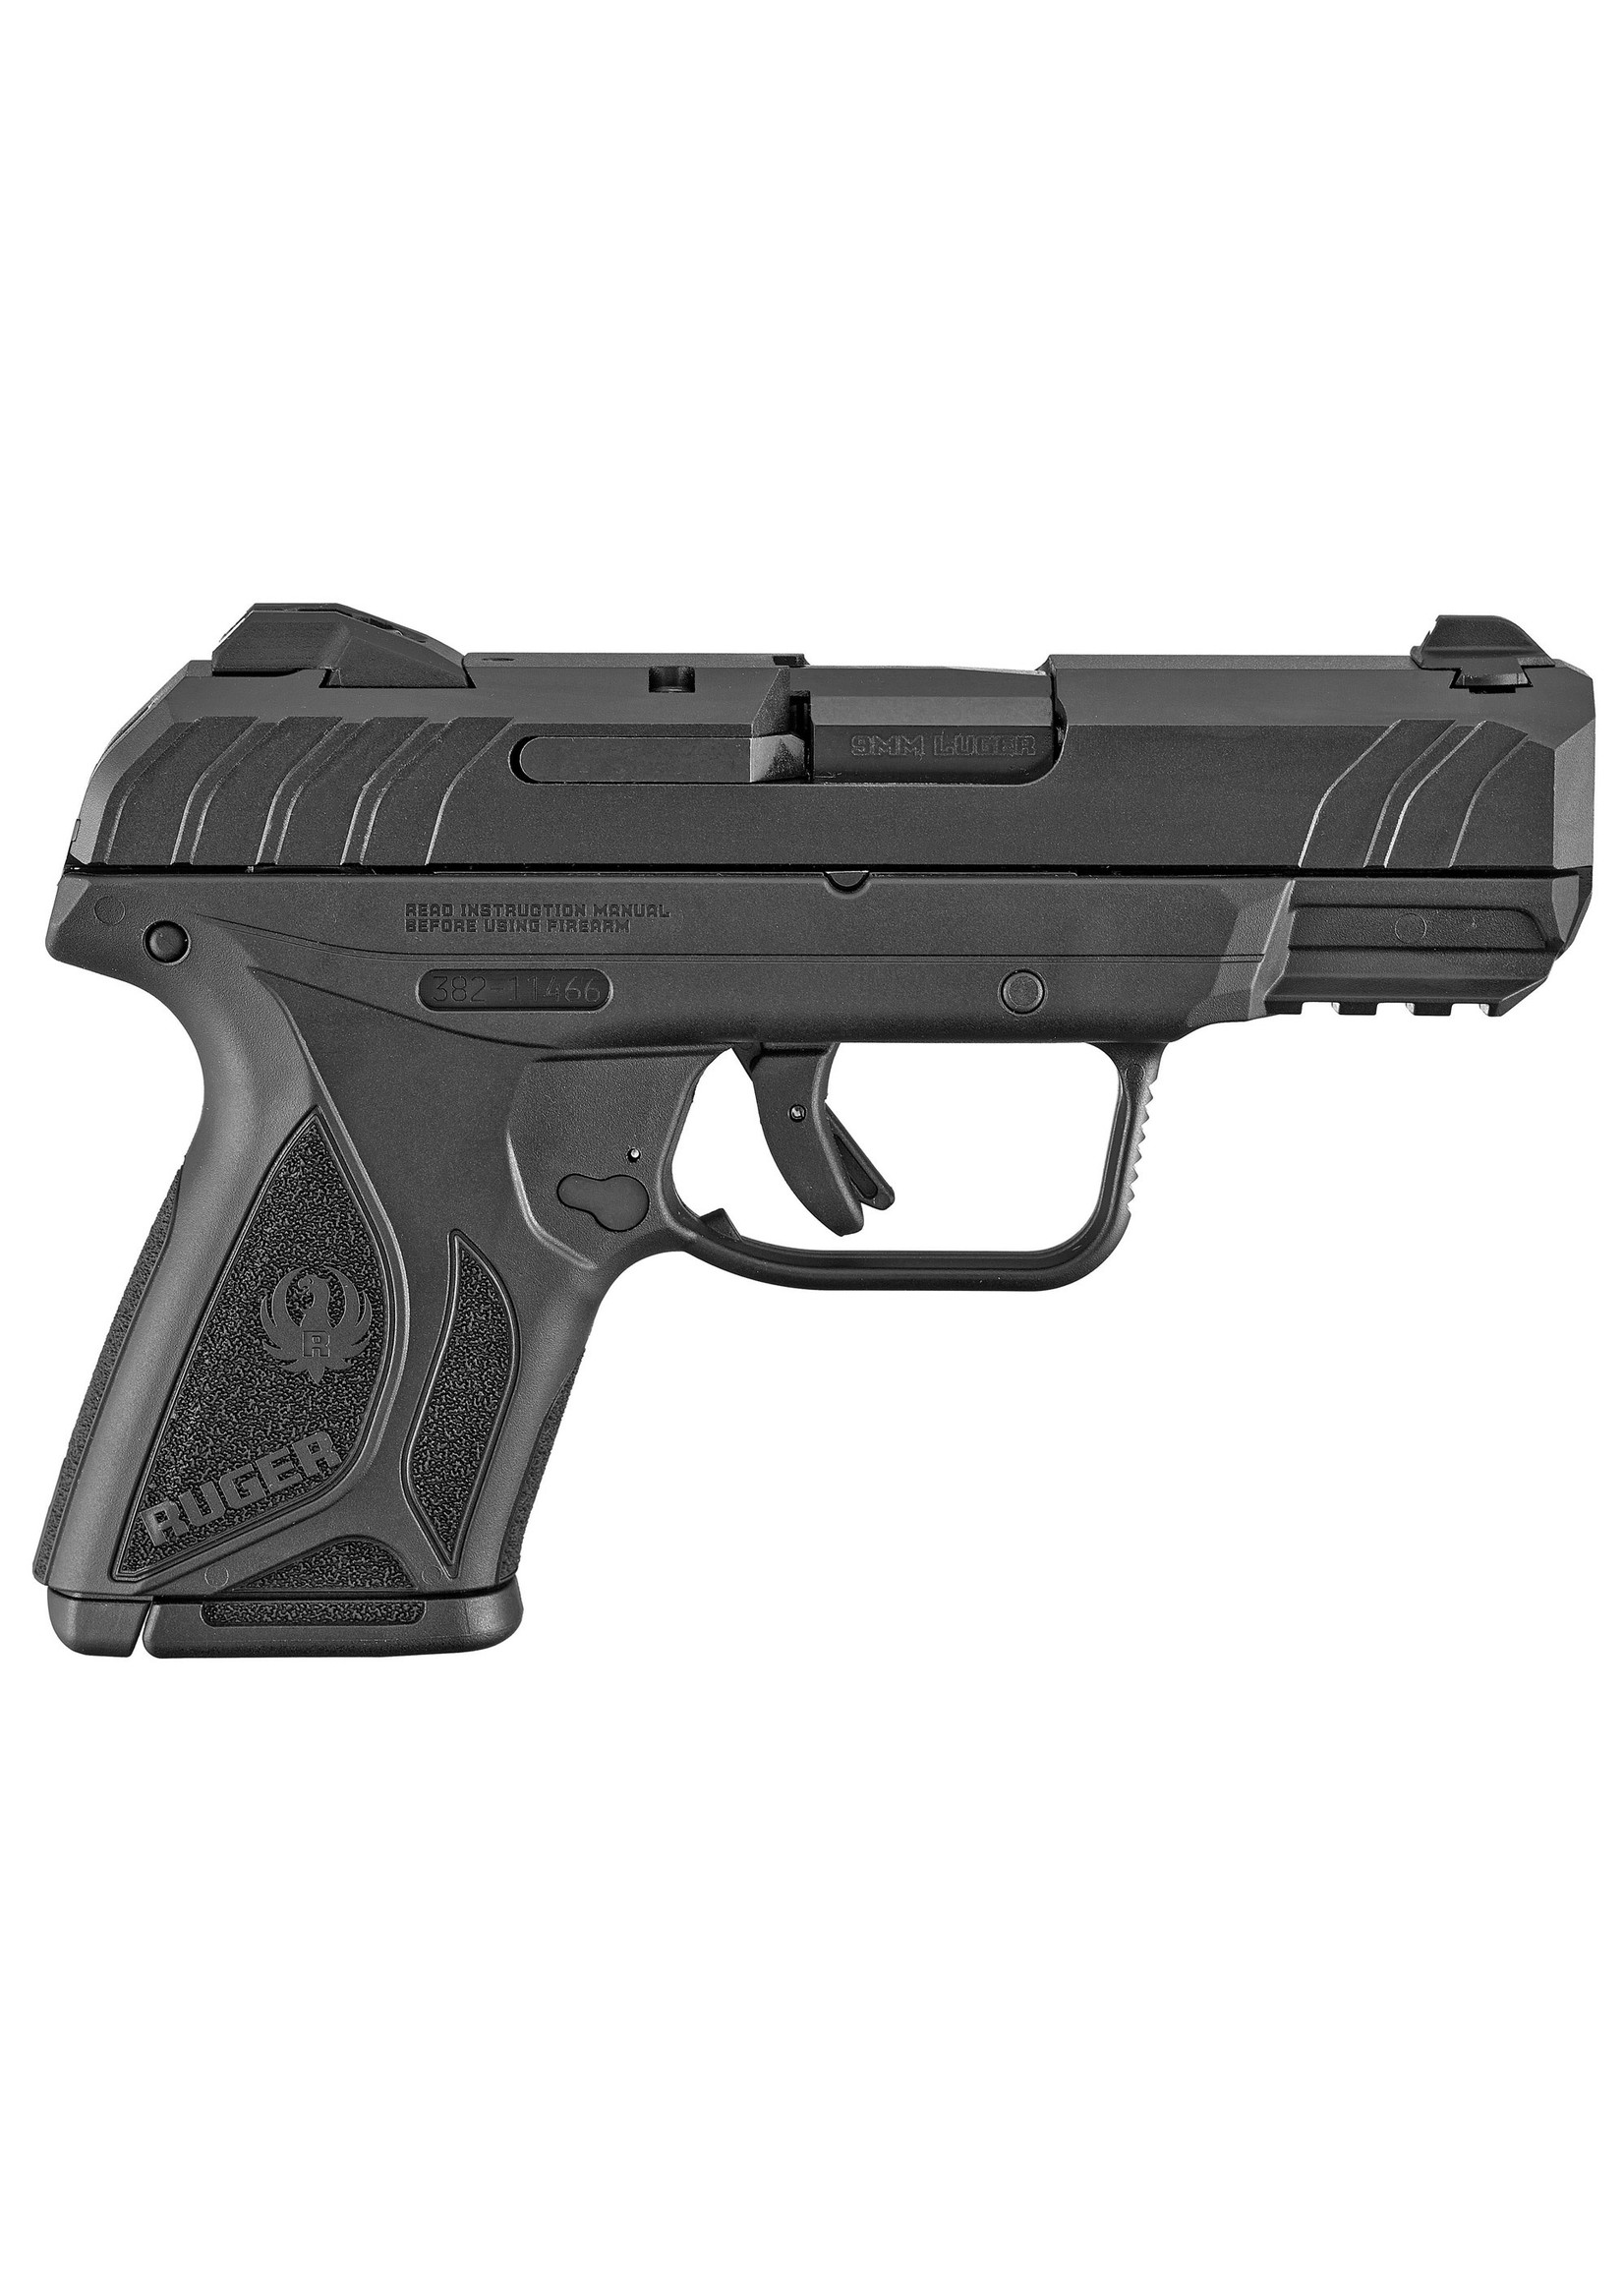 Ruger Ruger Security-9 Compact Pistol BLK 10+1 3818 | includes 2 magazines, 9mm